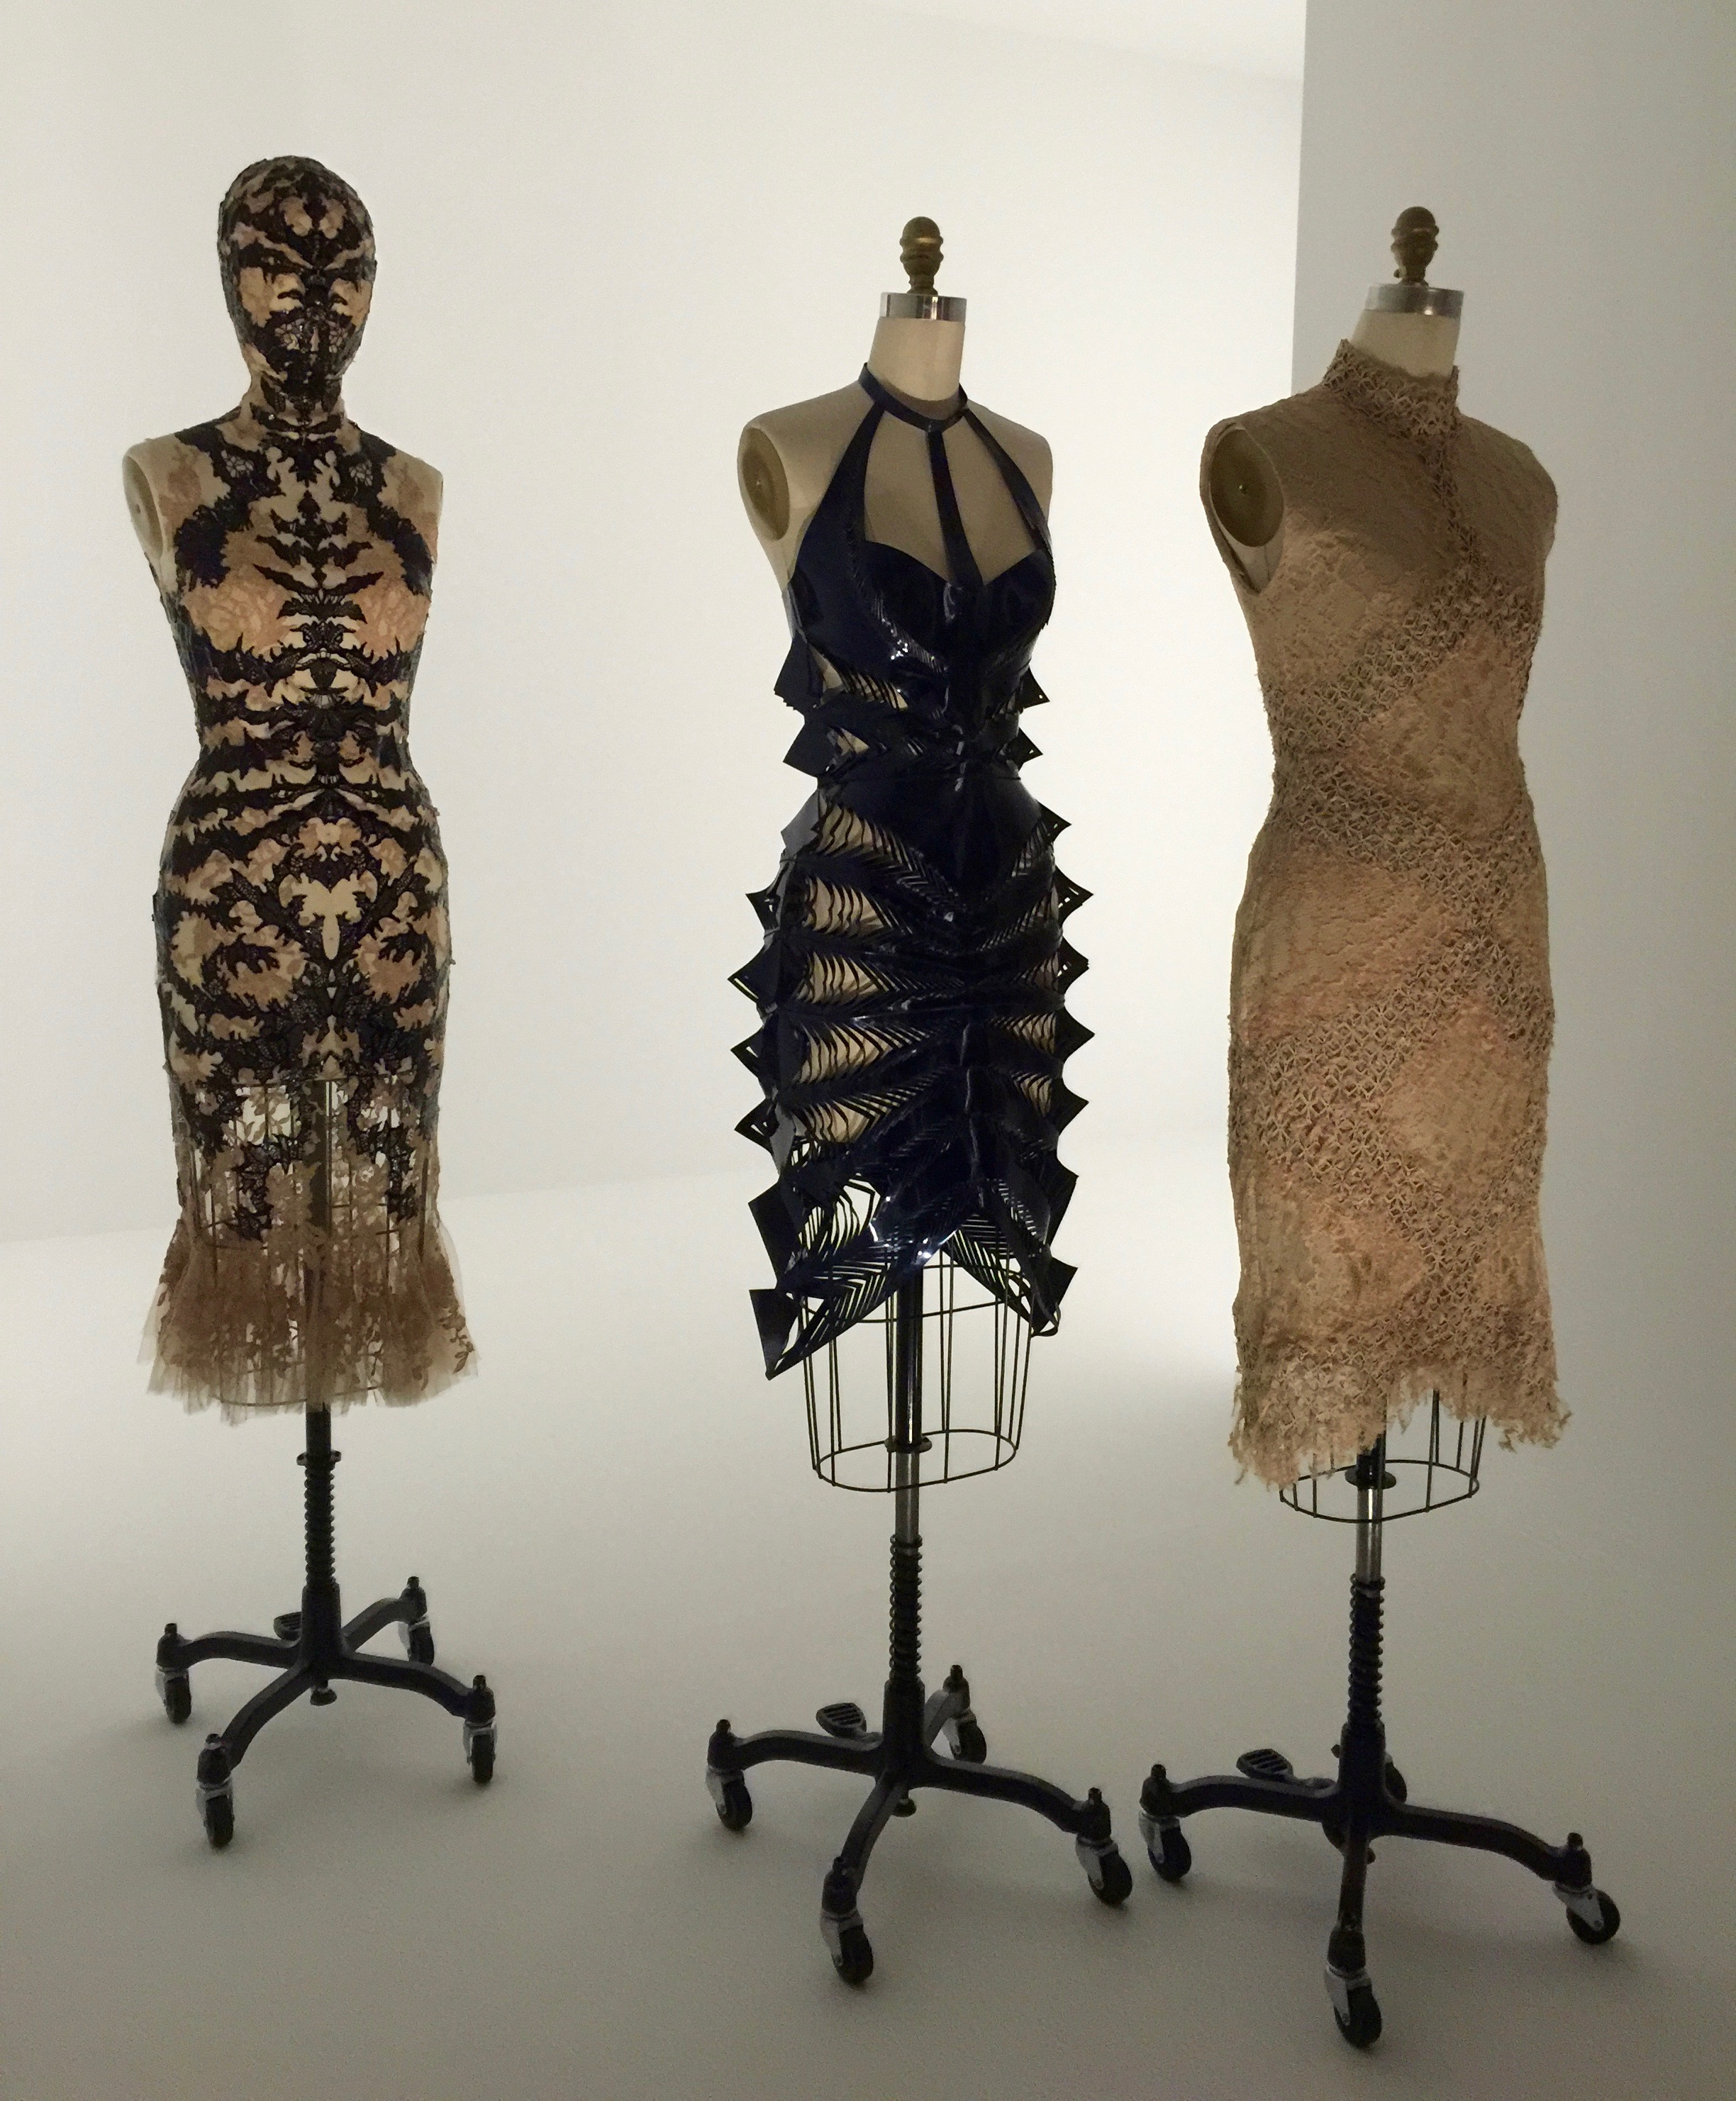 (l) ALEXANDER MCQUEEN, Sarah Burton DRESS, Spring/Summer 2012,pret-a-porter  Machine and hand-sewn nude silk lace bonded with laser-cut black patent leather hand-sewn godets of nude silk tulle, hand-appliquéd with nude silk lace motifs  (c) Iris van Herpen DRESS, Spring/Summer 2015,pret-a-porter  Machine-sewn, laser-cut, bonded navy patent leather  (r) Iris van Herpen DRESS, Spring/Summer 2016,pret-a-porter  Machine-sewn, bonded nude silk twill and cotton plain weave with overlay of nude cotton lace handwoven with laser-cut nude leather appliqué